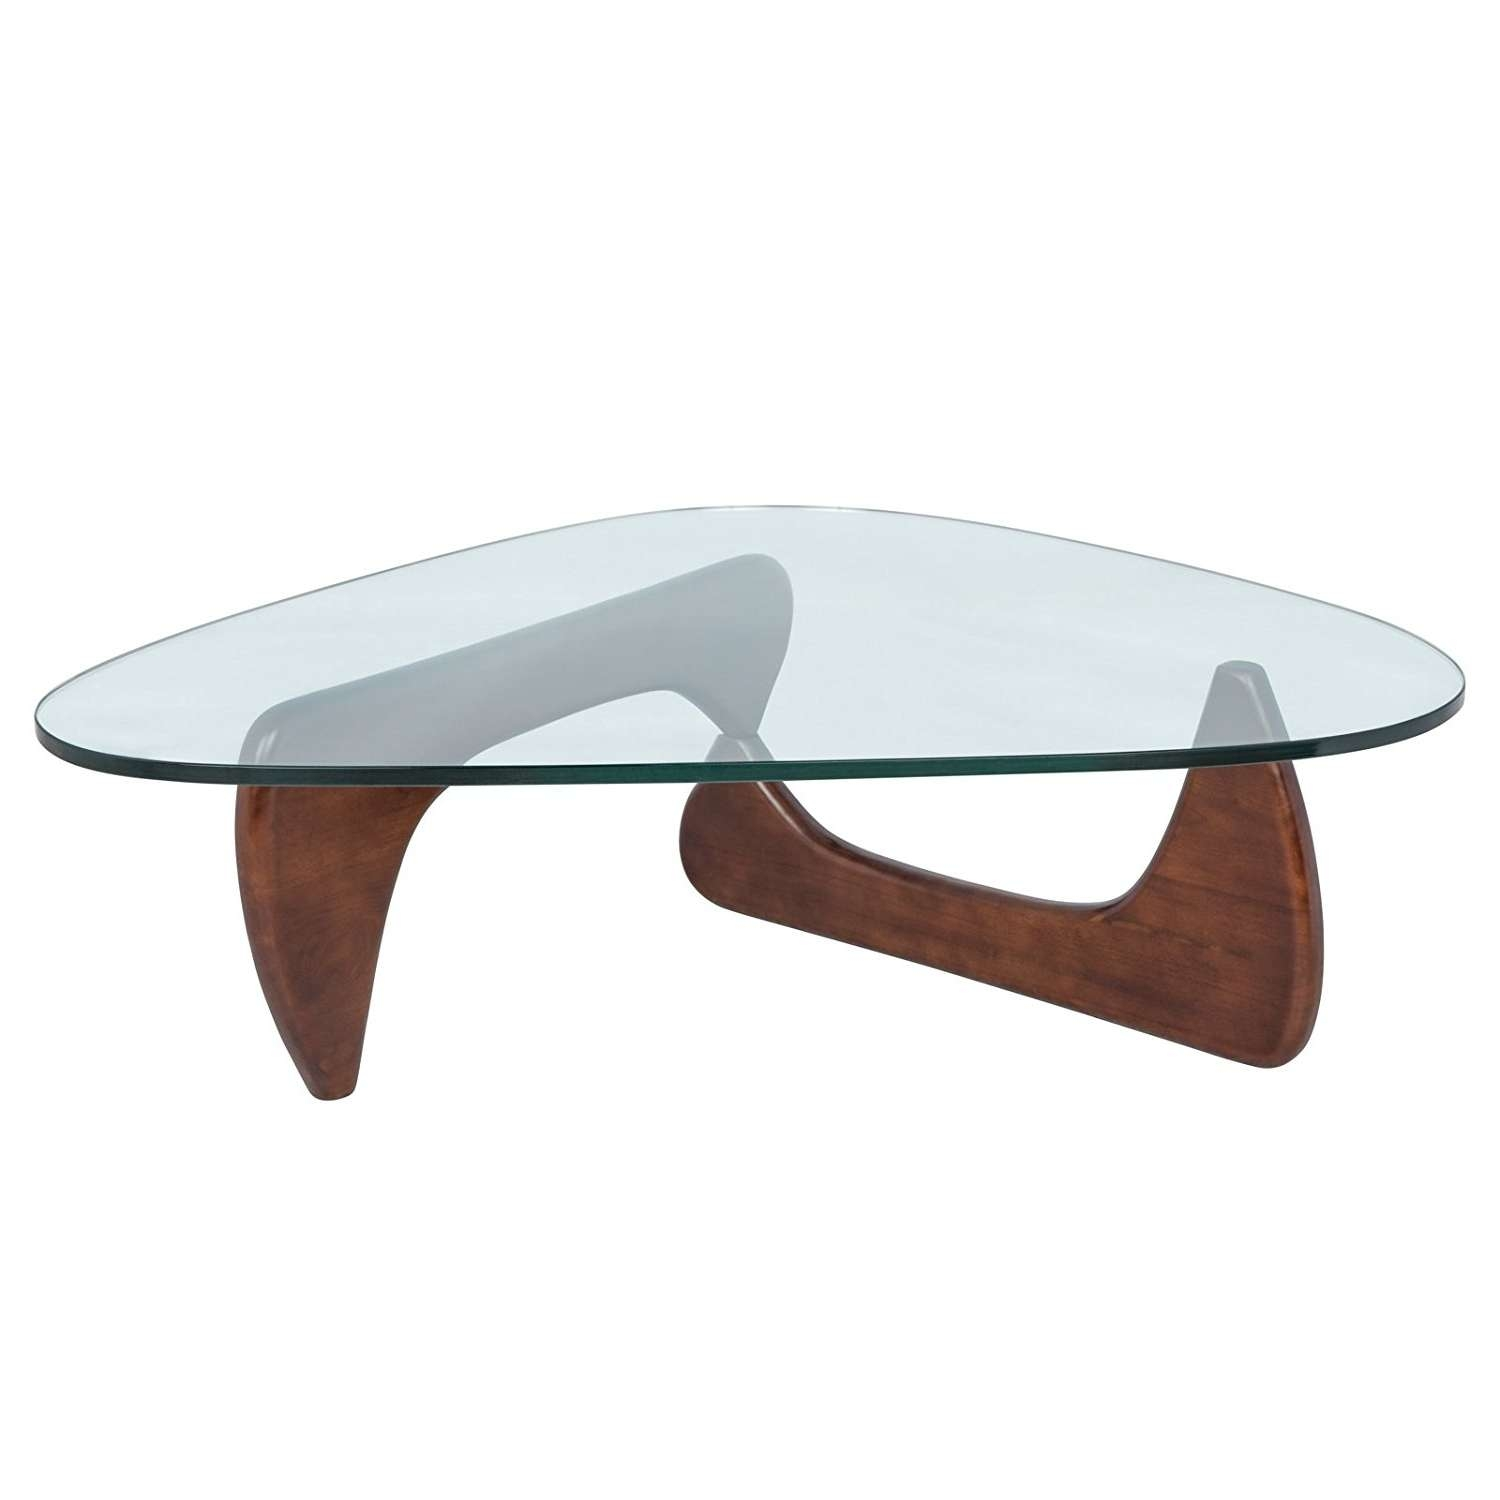 Popular Glass And Wood Coffee Tables Regarding Coffee Table : Amazing Wood Coffee Table Large Square Coffee Table (View 15 of 20)